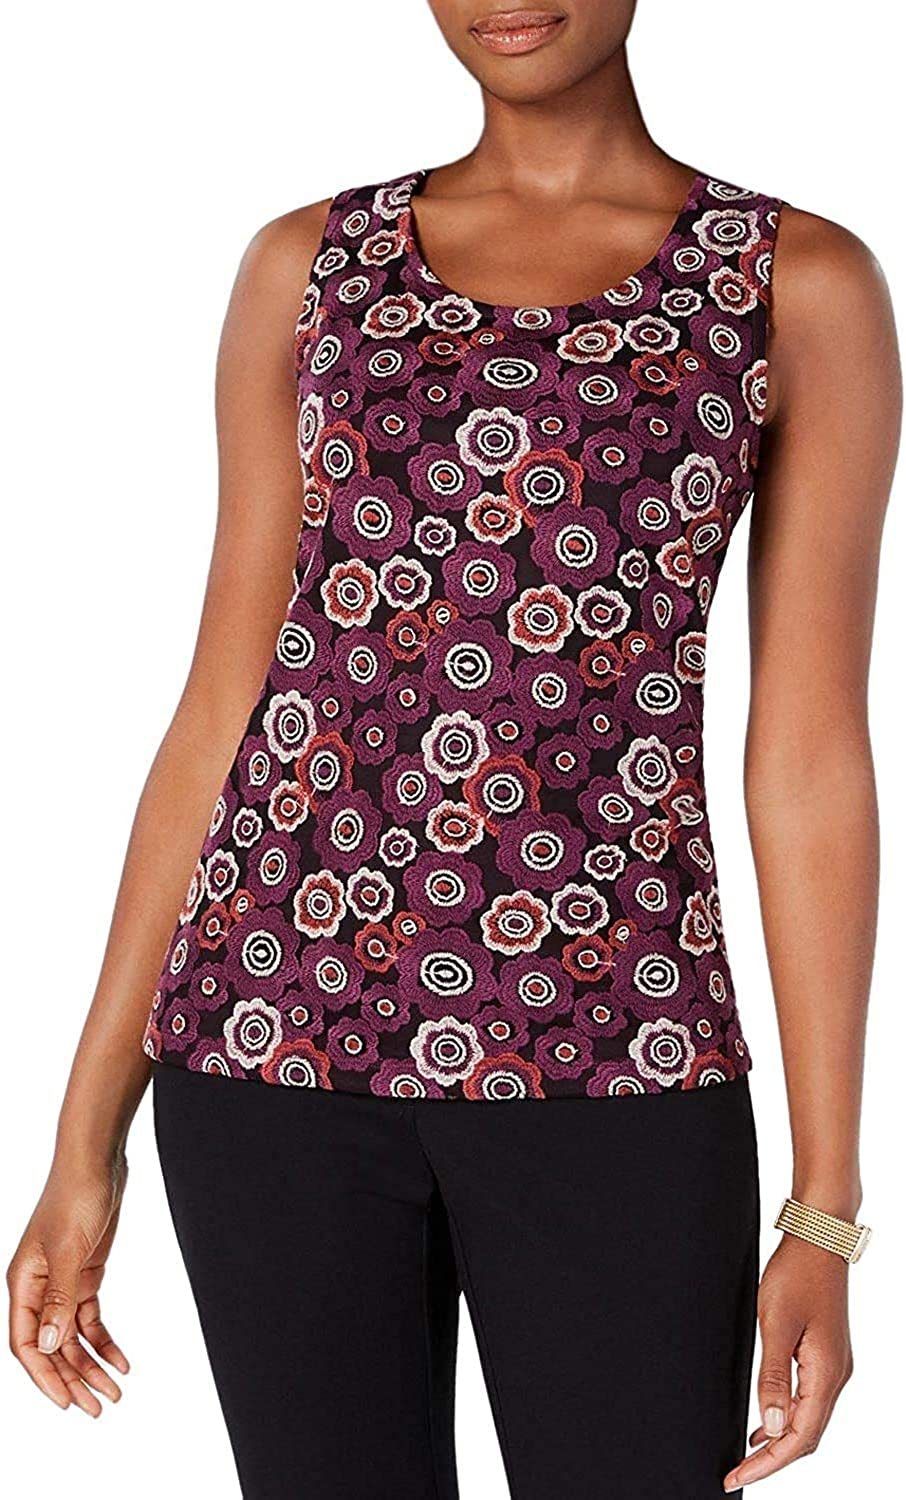 Genuine Free Shipping Opening large release sale Tommy Hilfiger Womens Embroidered Sleeveless Blouse Top